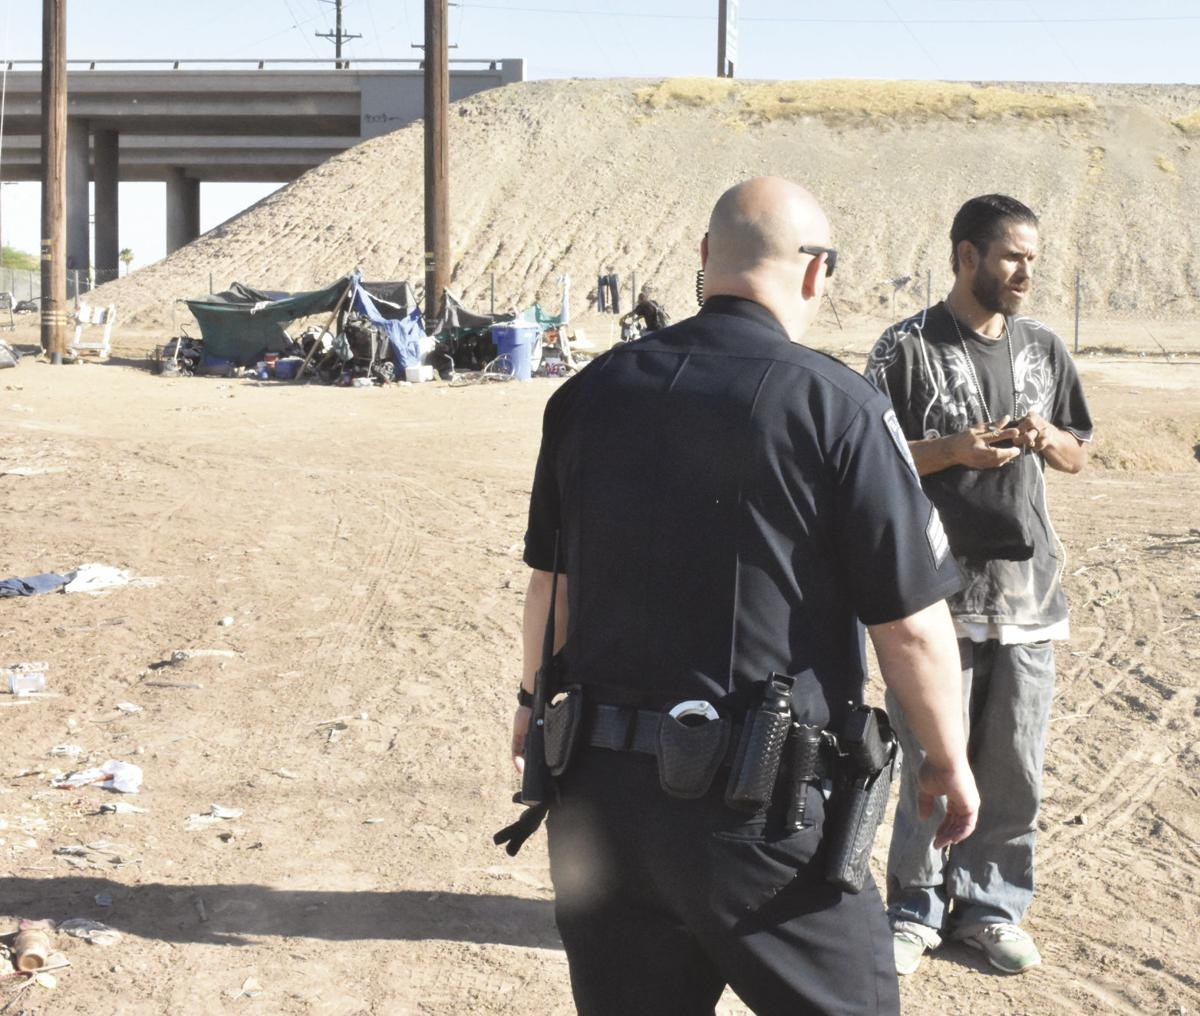 Homelessness placing a strain on public safety